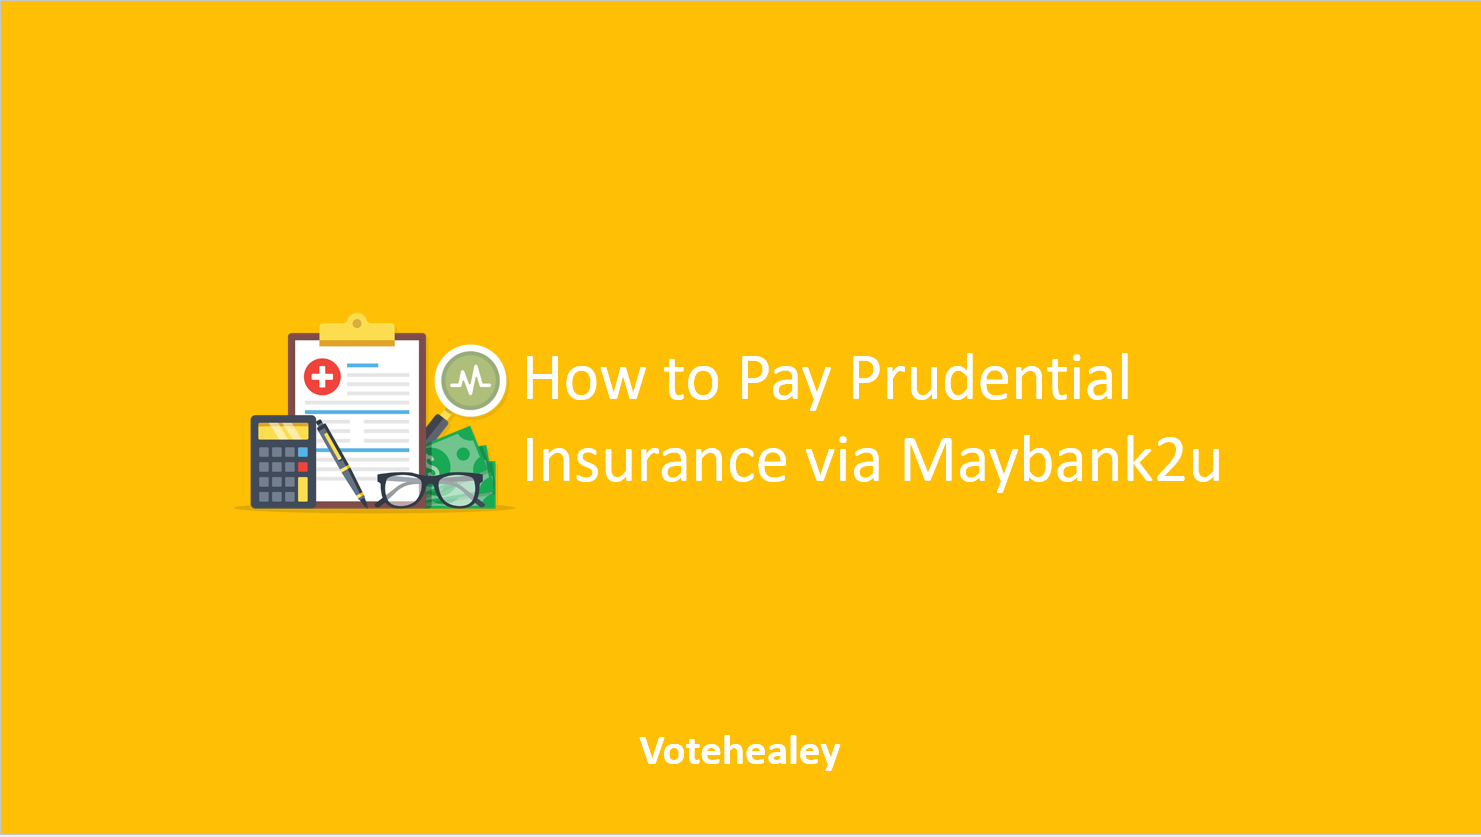 How to Pay Prudential Insurance via Maybank2u